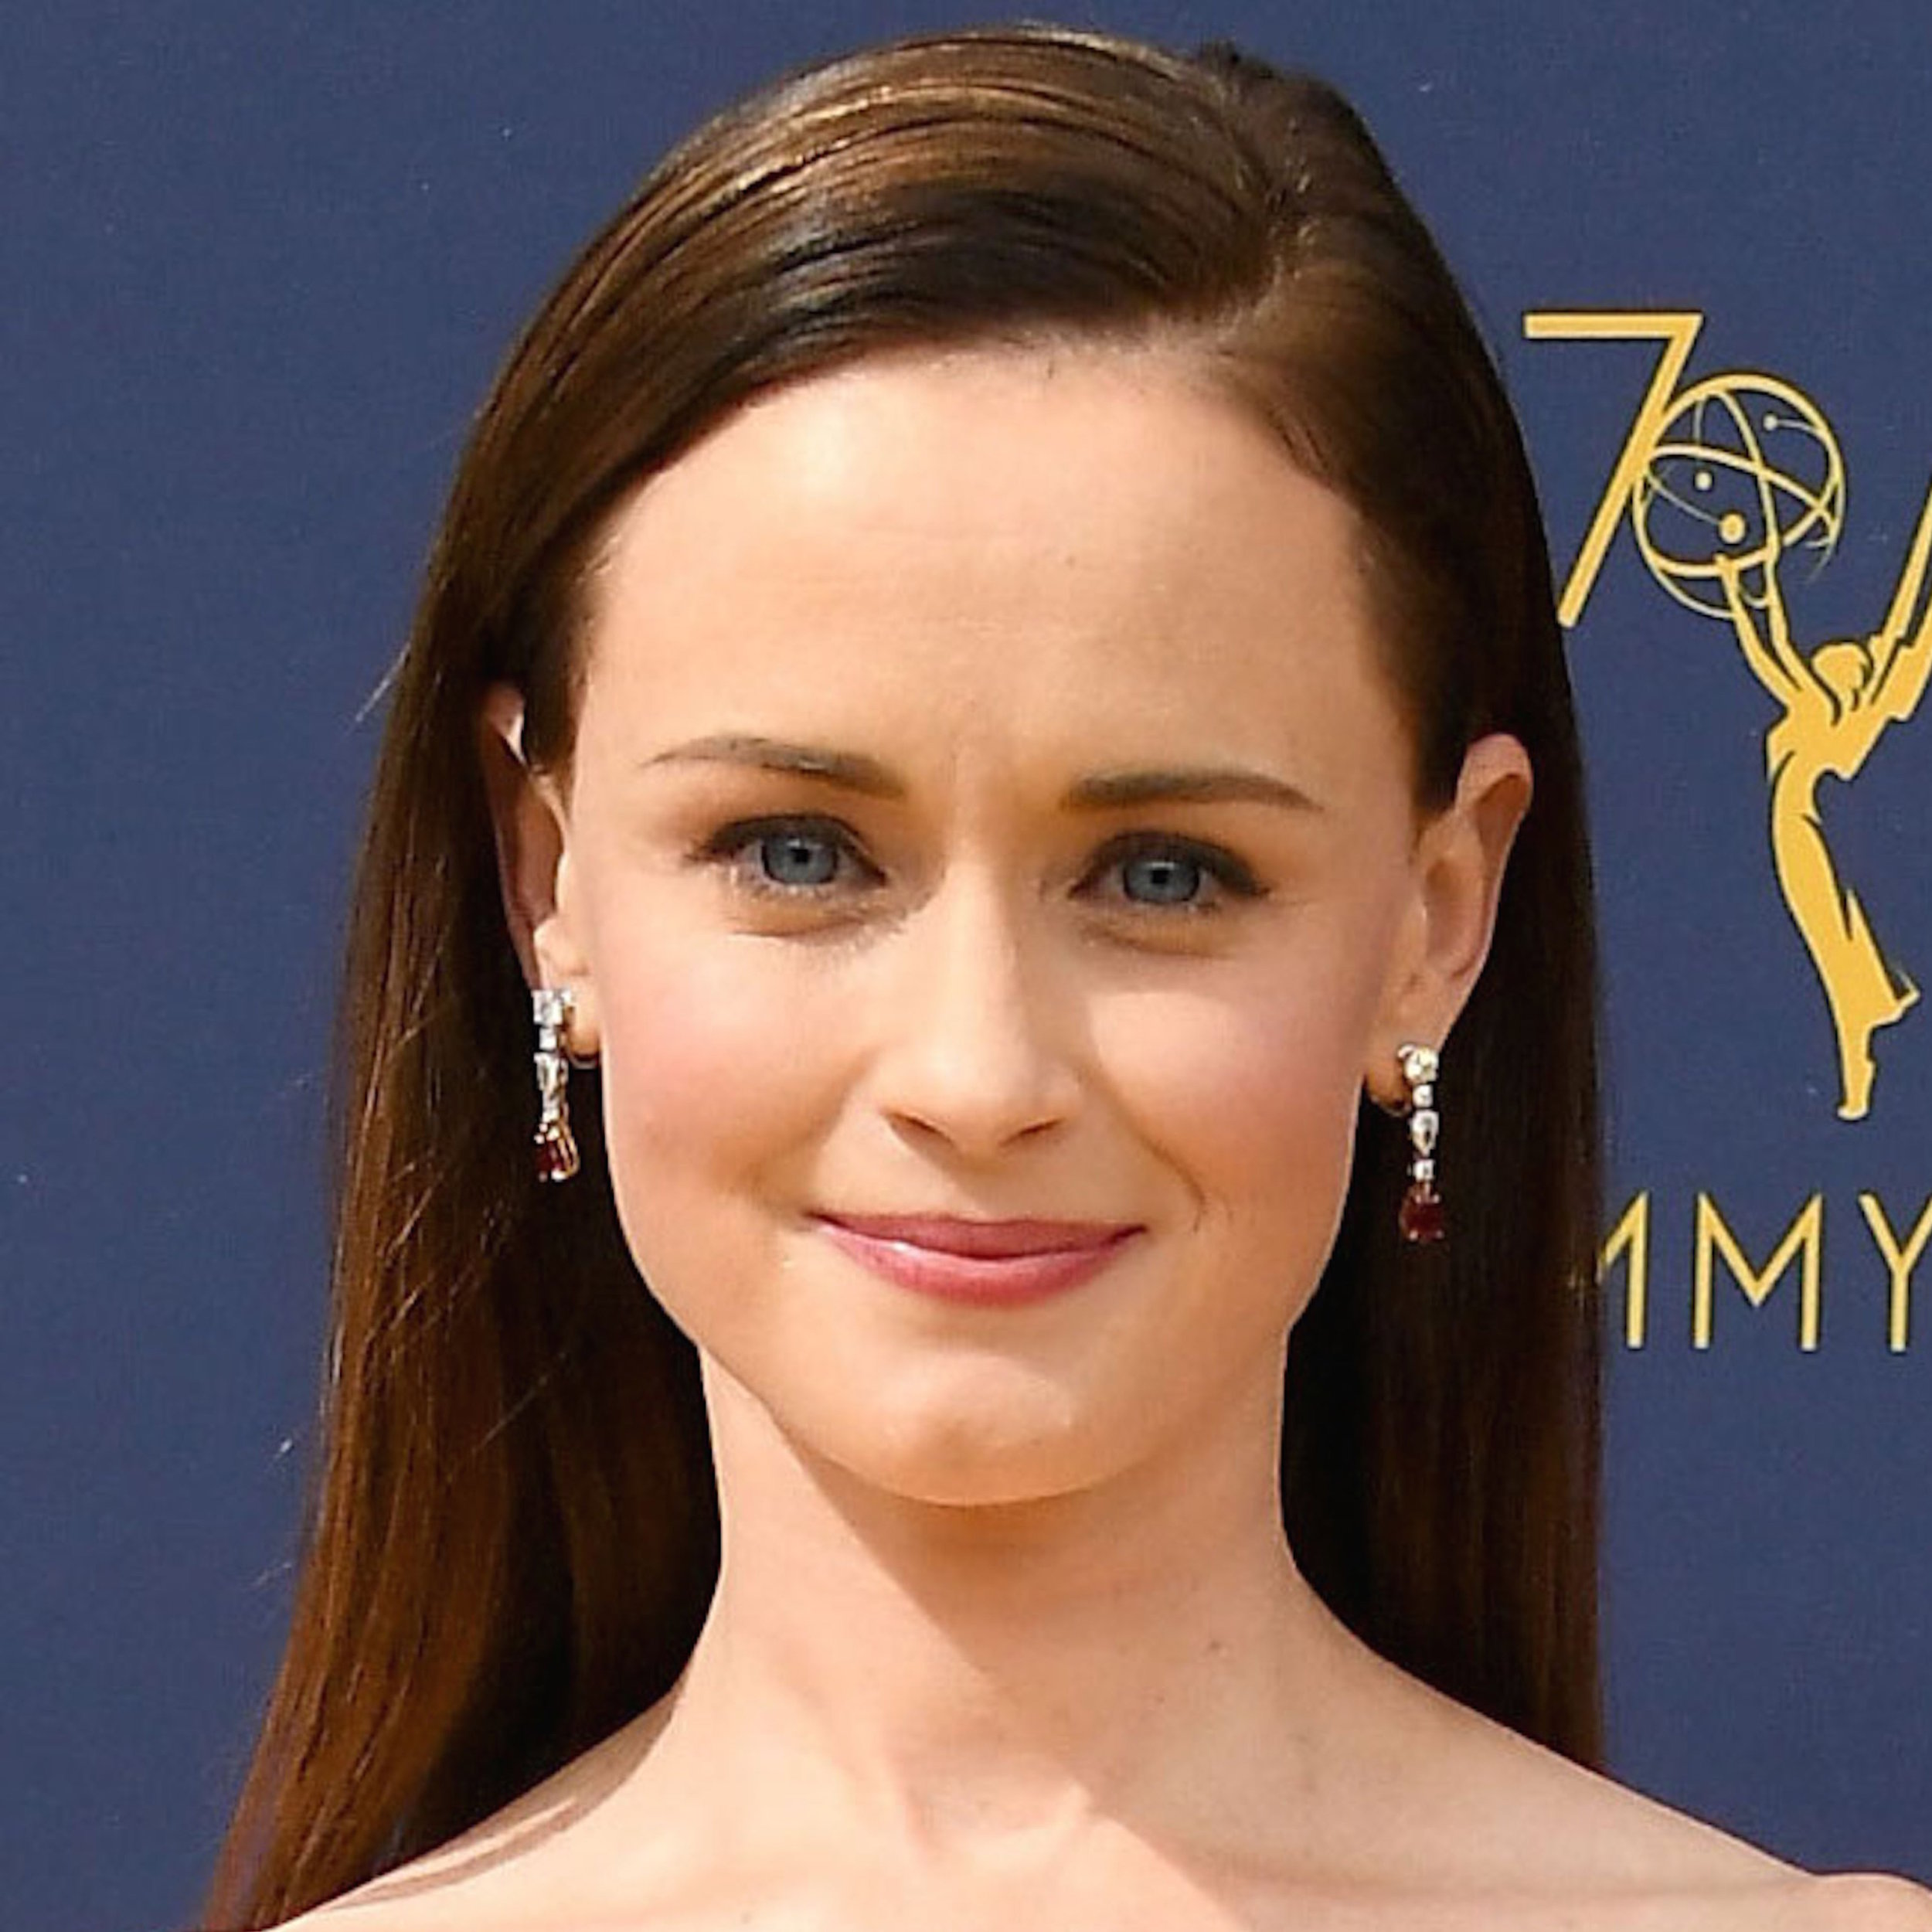 Plain diamond earrings would have done the trick when it came to Alexis Bledel, nominated for her role in Hulu's The Handmaid's Tale, but we love that she wore Harry Winston diamond earrings tipped in pear-shaped rubies with her multi-colored Delpozo gown. The red gems, possibly a subtle nod to Handmaid's signature color, picked up the garment's feathered appliqués. -